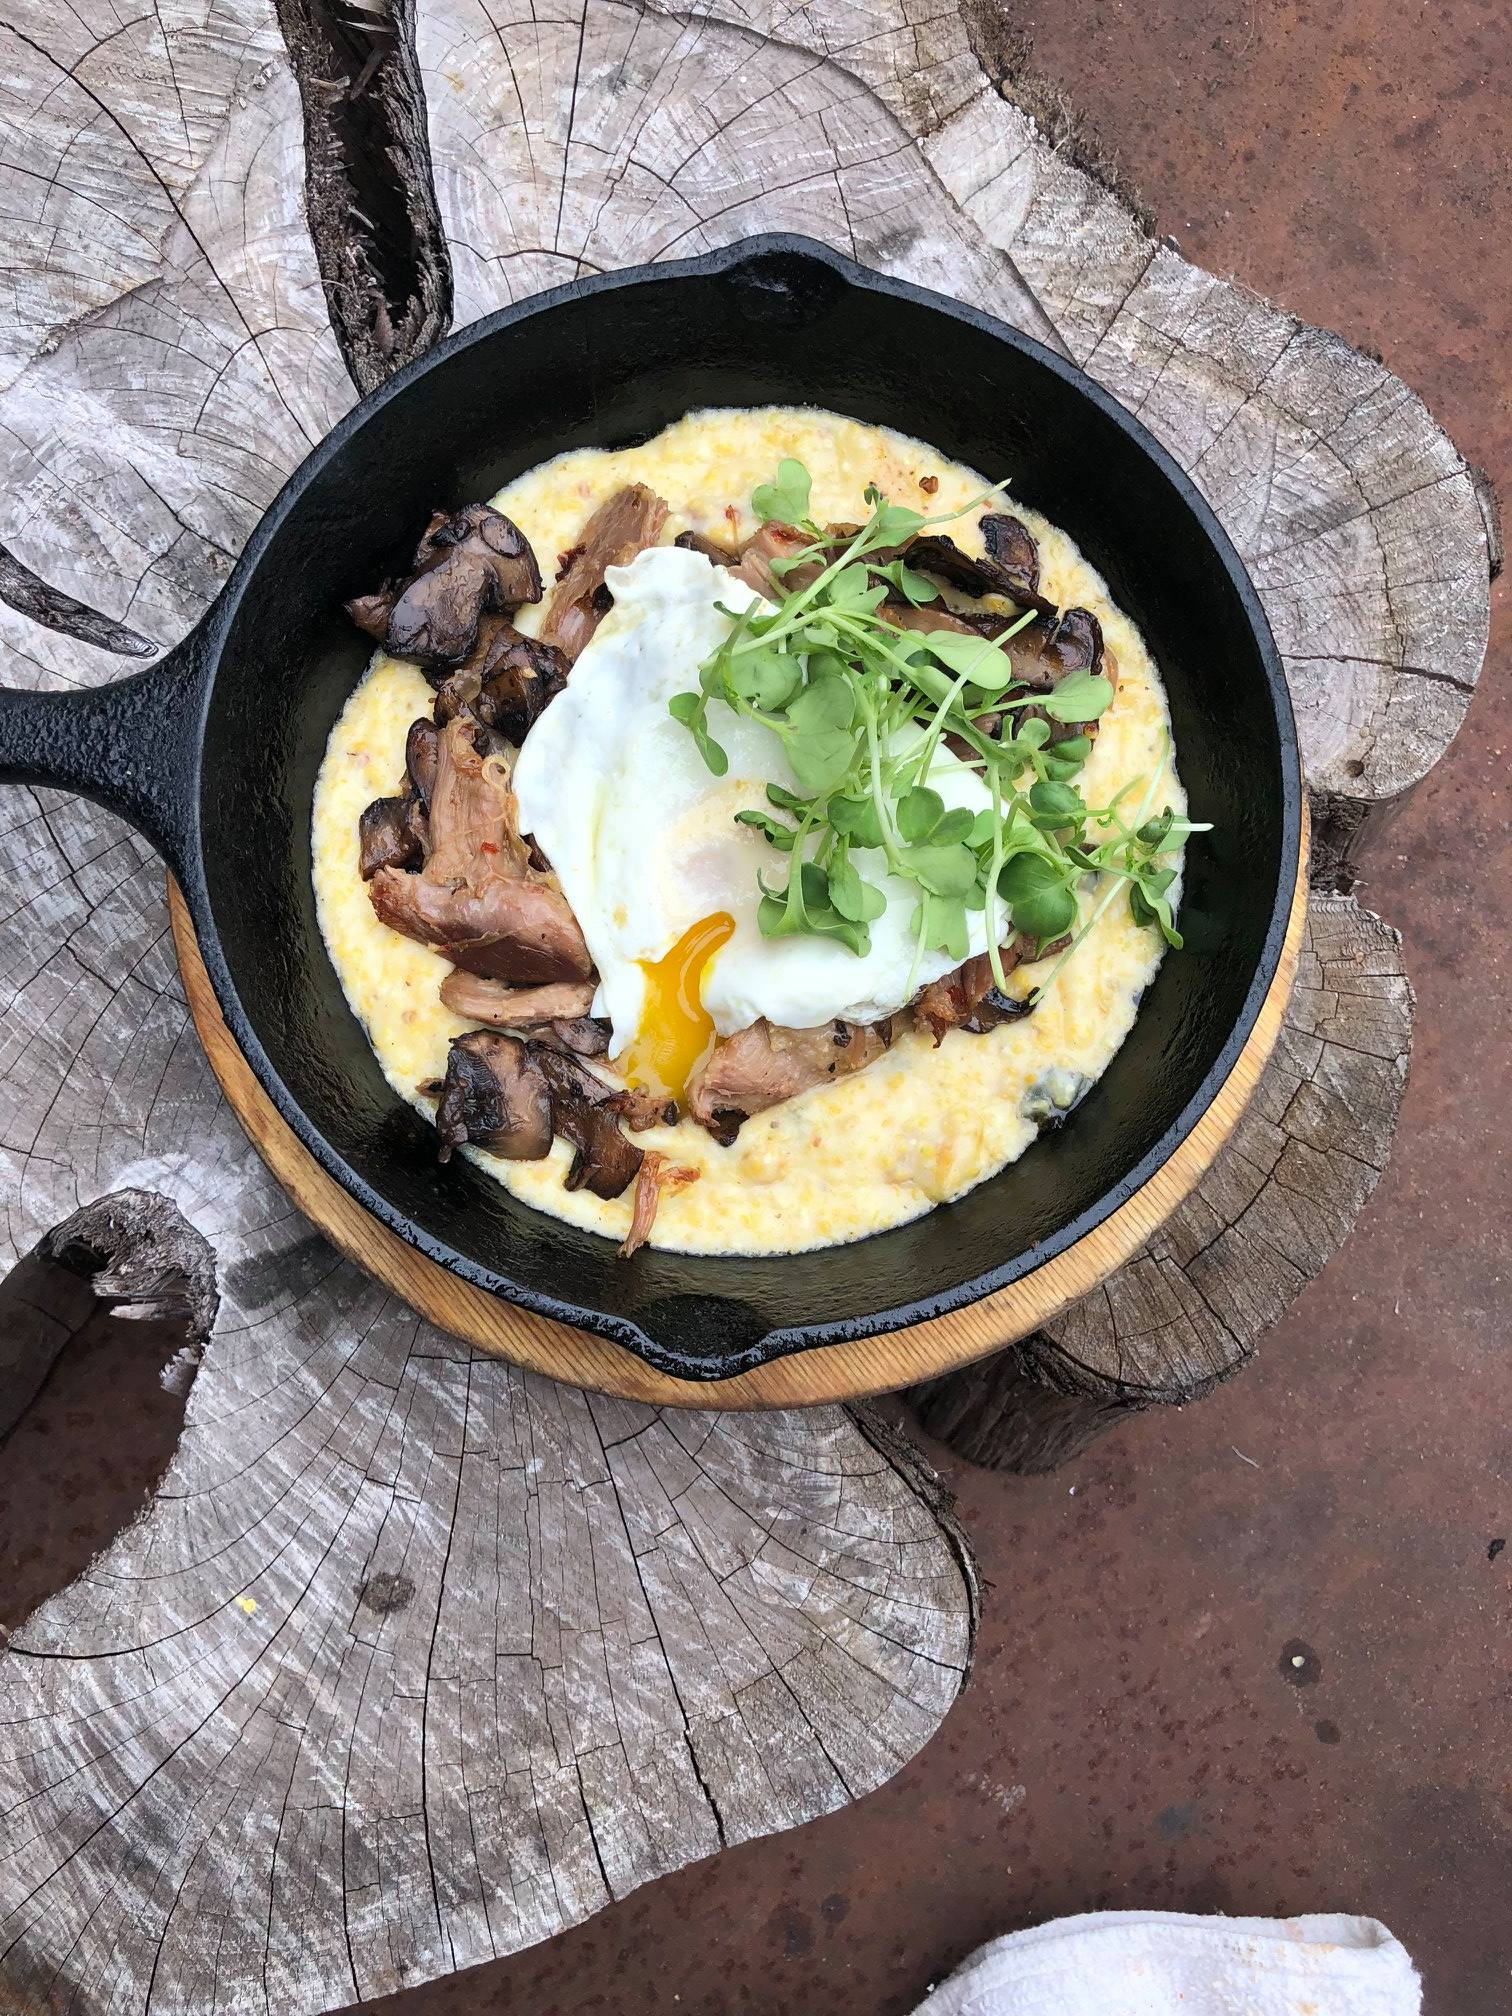 Duck confit, duck eggs, mushrooms, and grits from the Leaning Pear